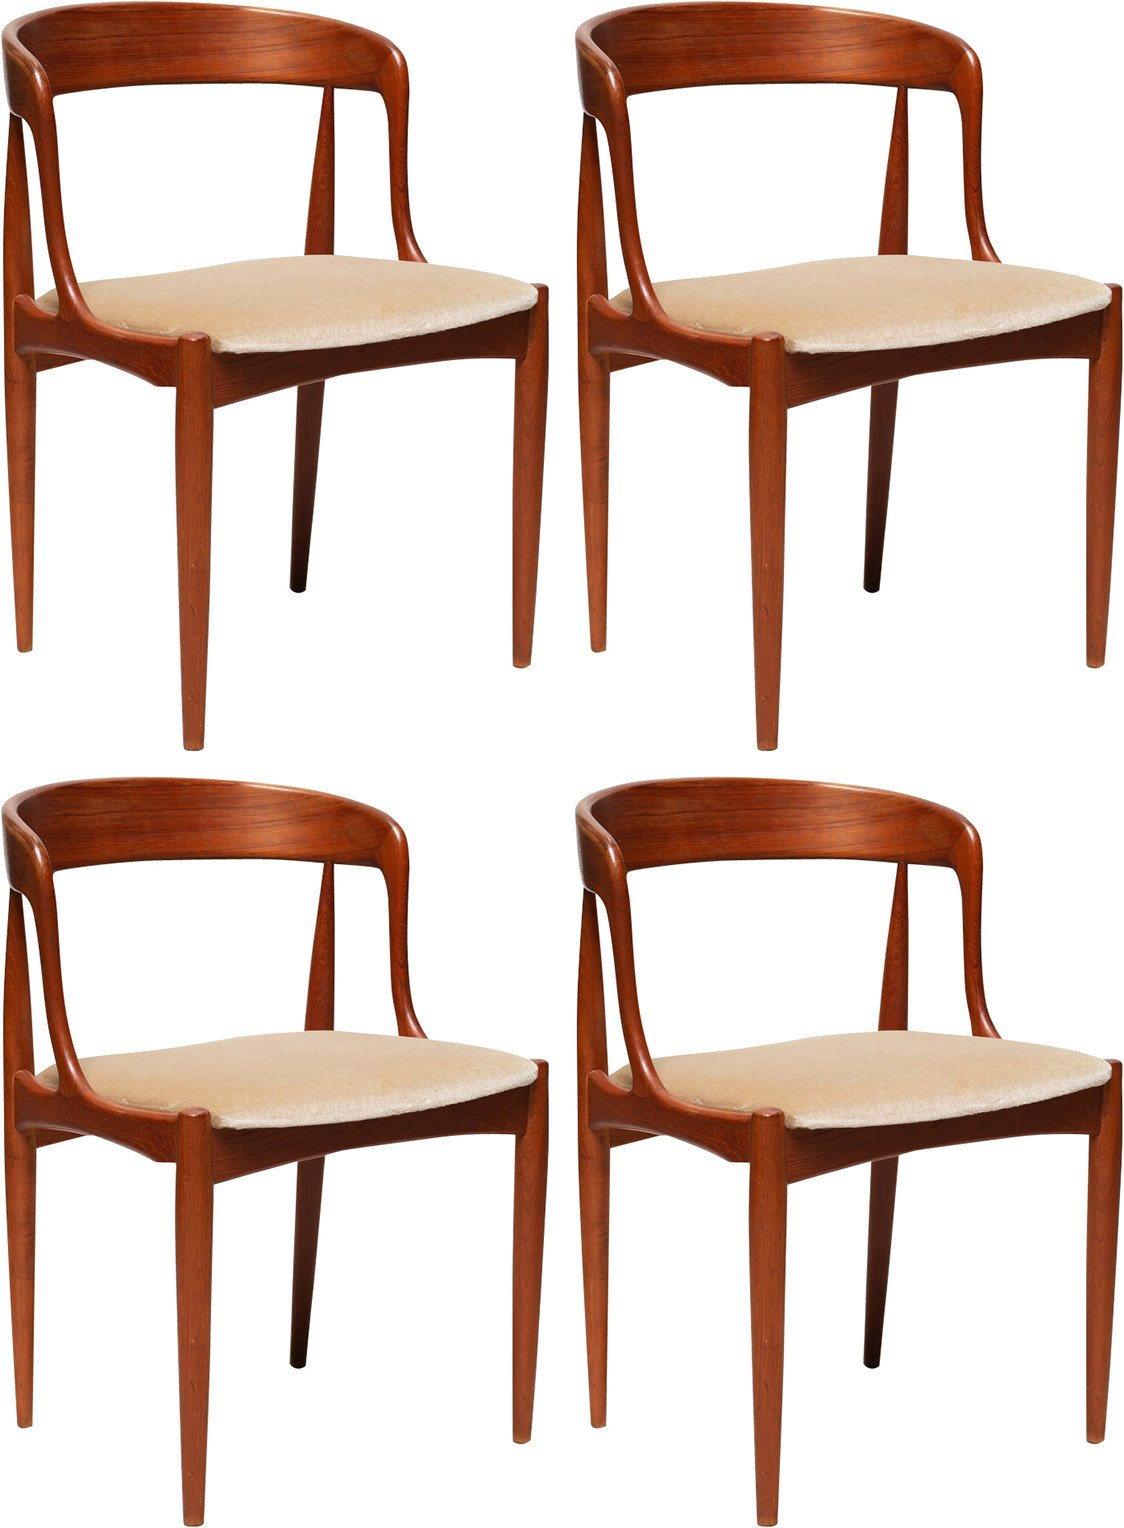 Set of Four Chairs by K. Kristiansen, Schou Andersen, Denmark, 1960s